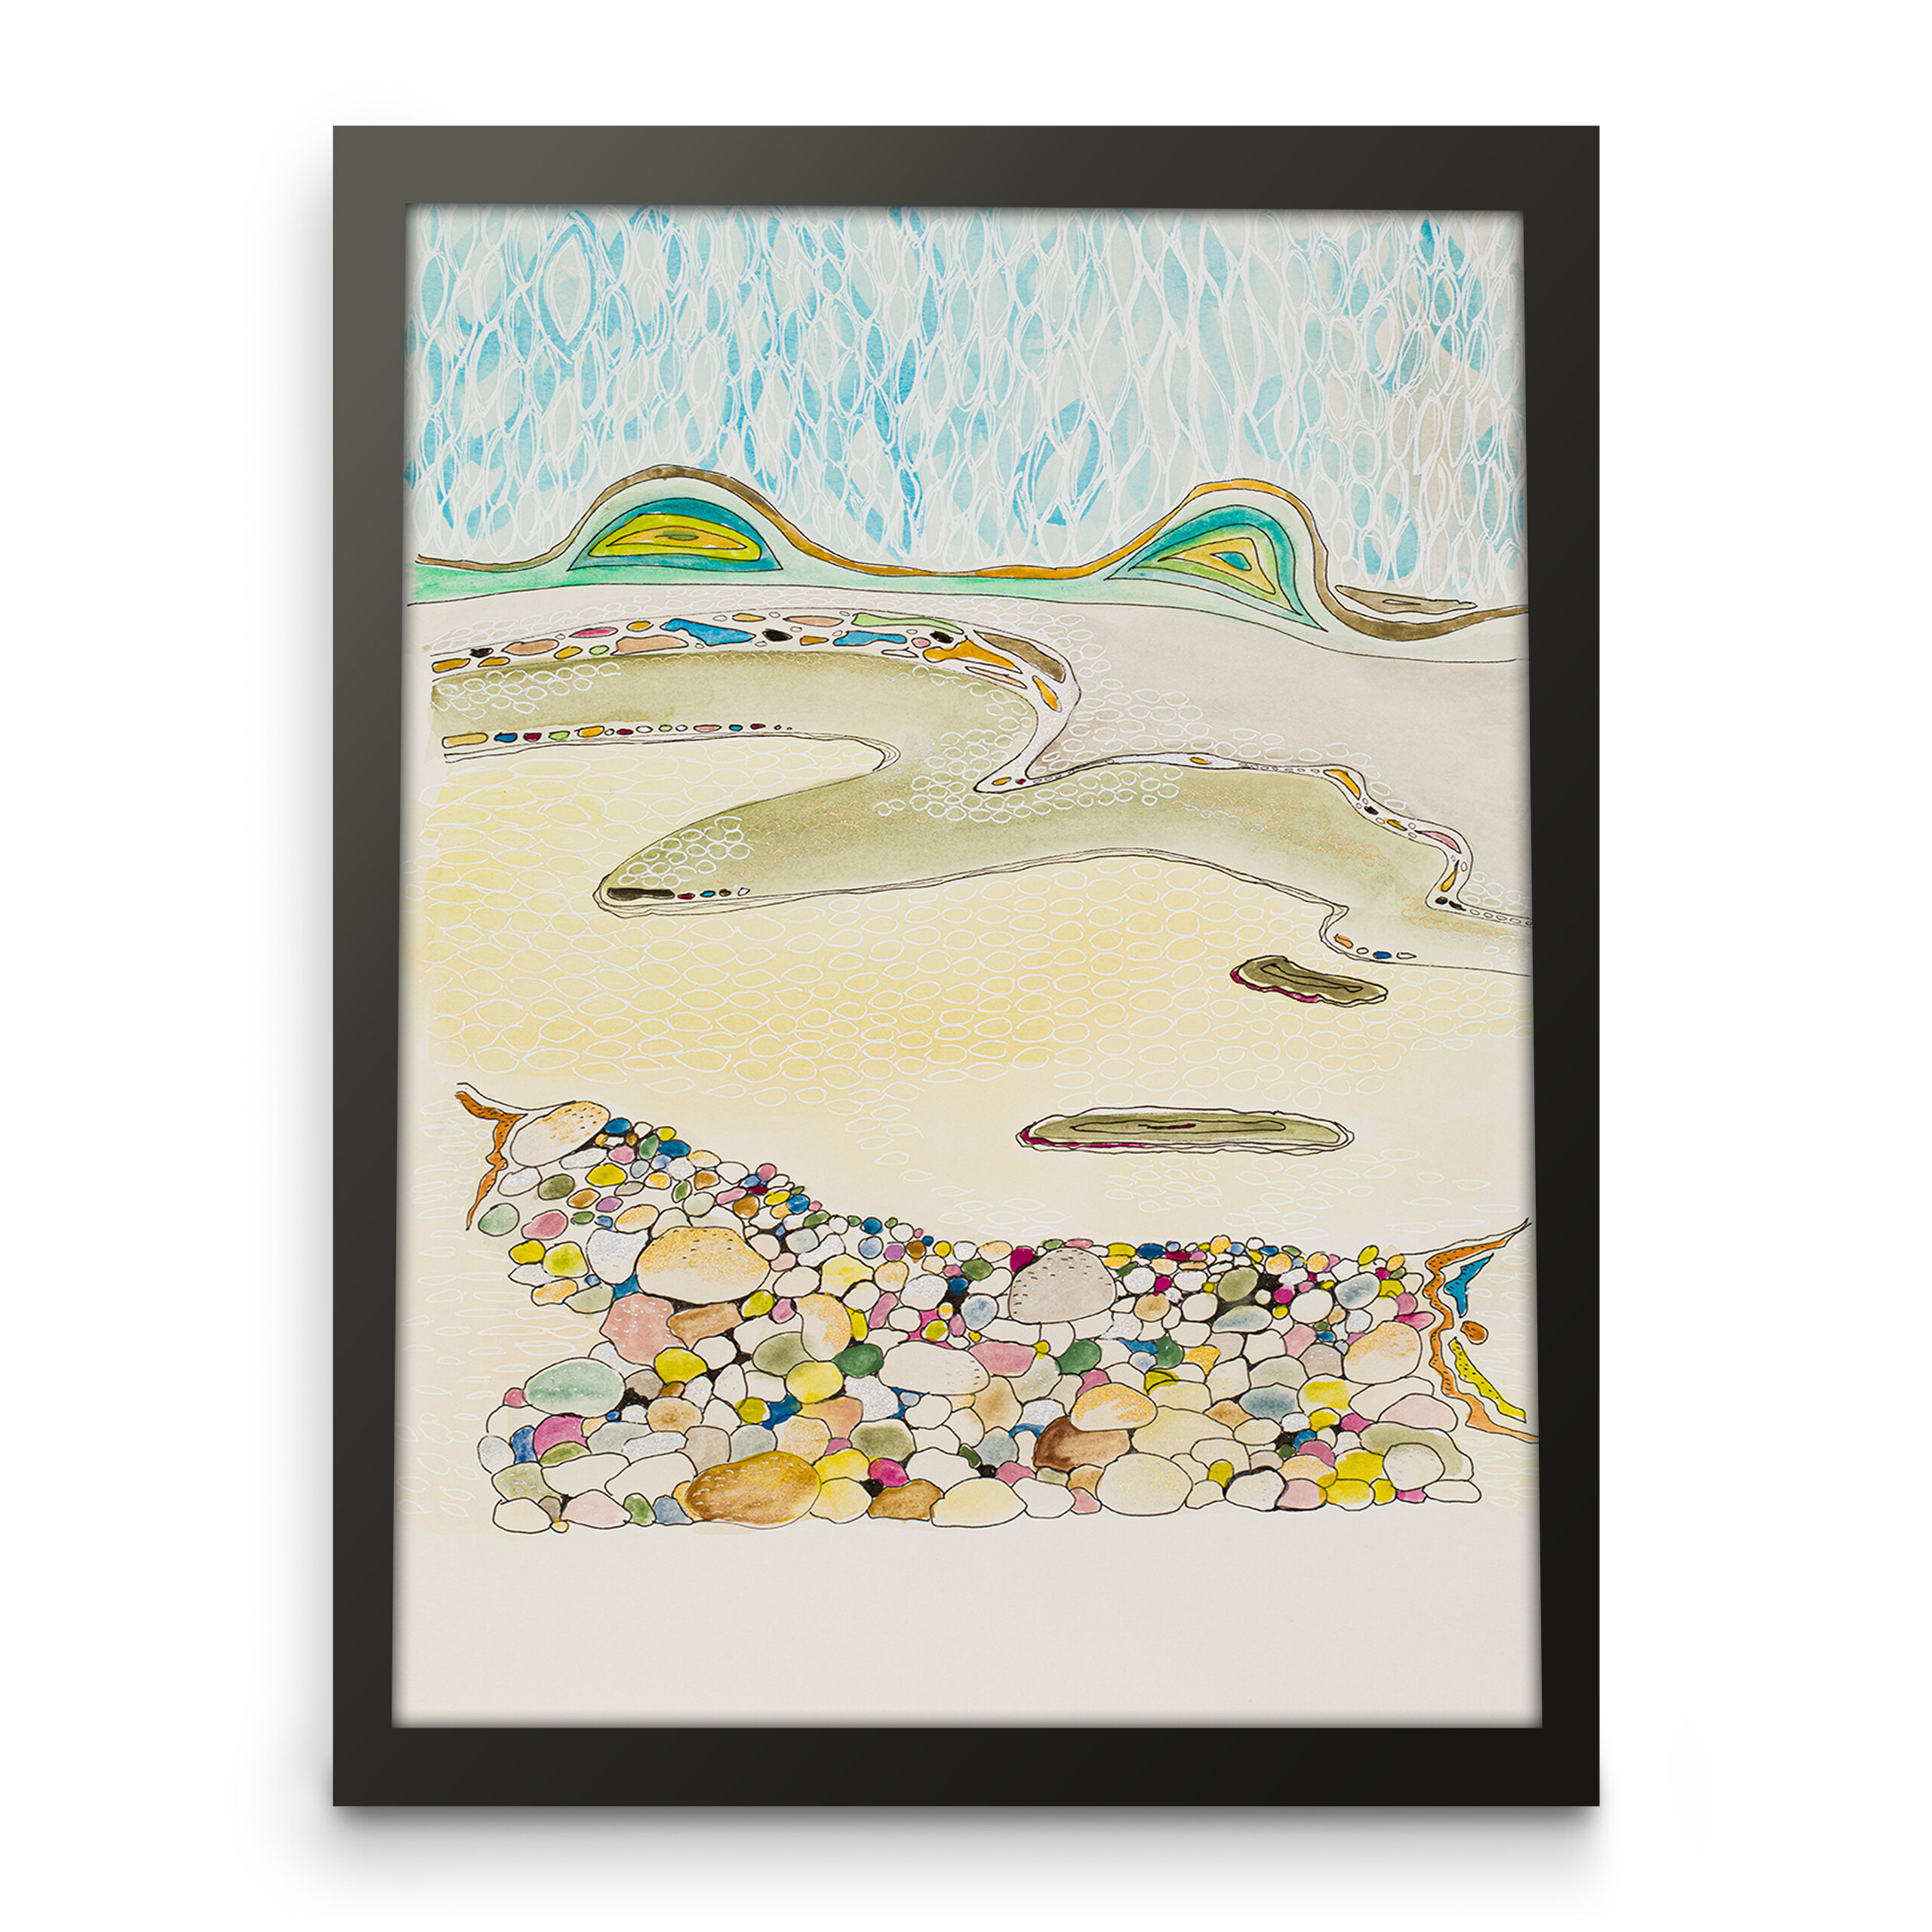 Landscape nature abstract art, Paper print, Front view